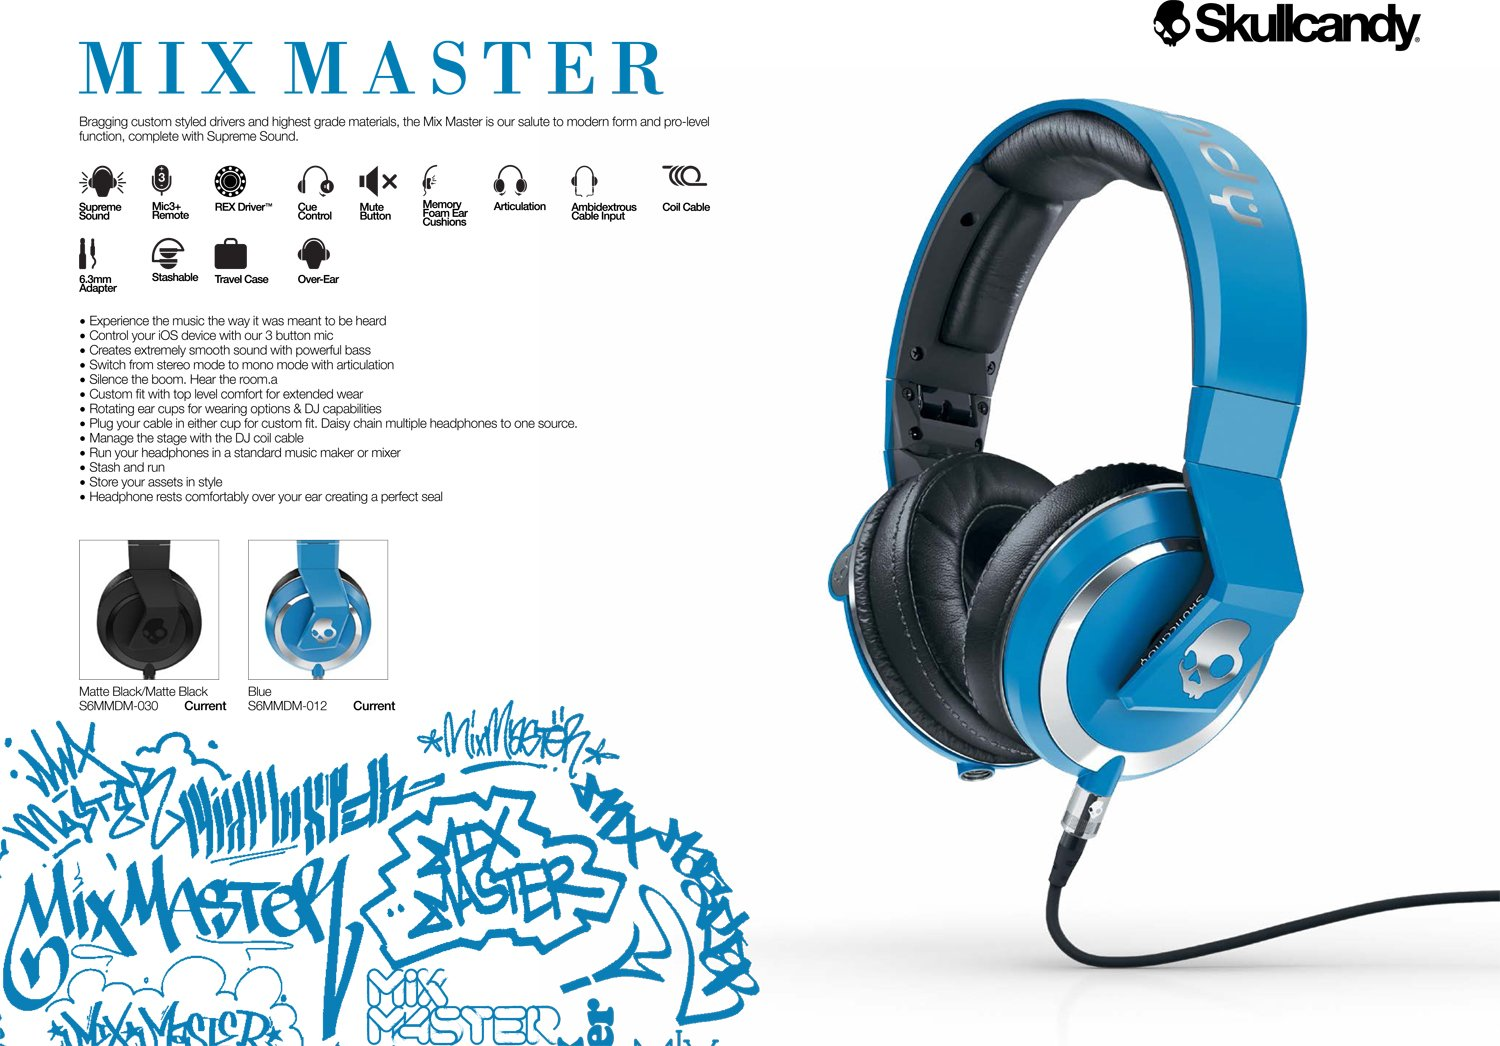 Skullcandy Mix Master Headphones with DJ Capabilities and 3 Button Mic, Matte Black by Skullcandy (Image #2)